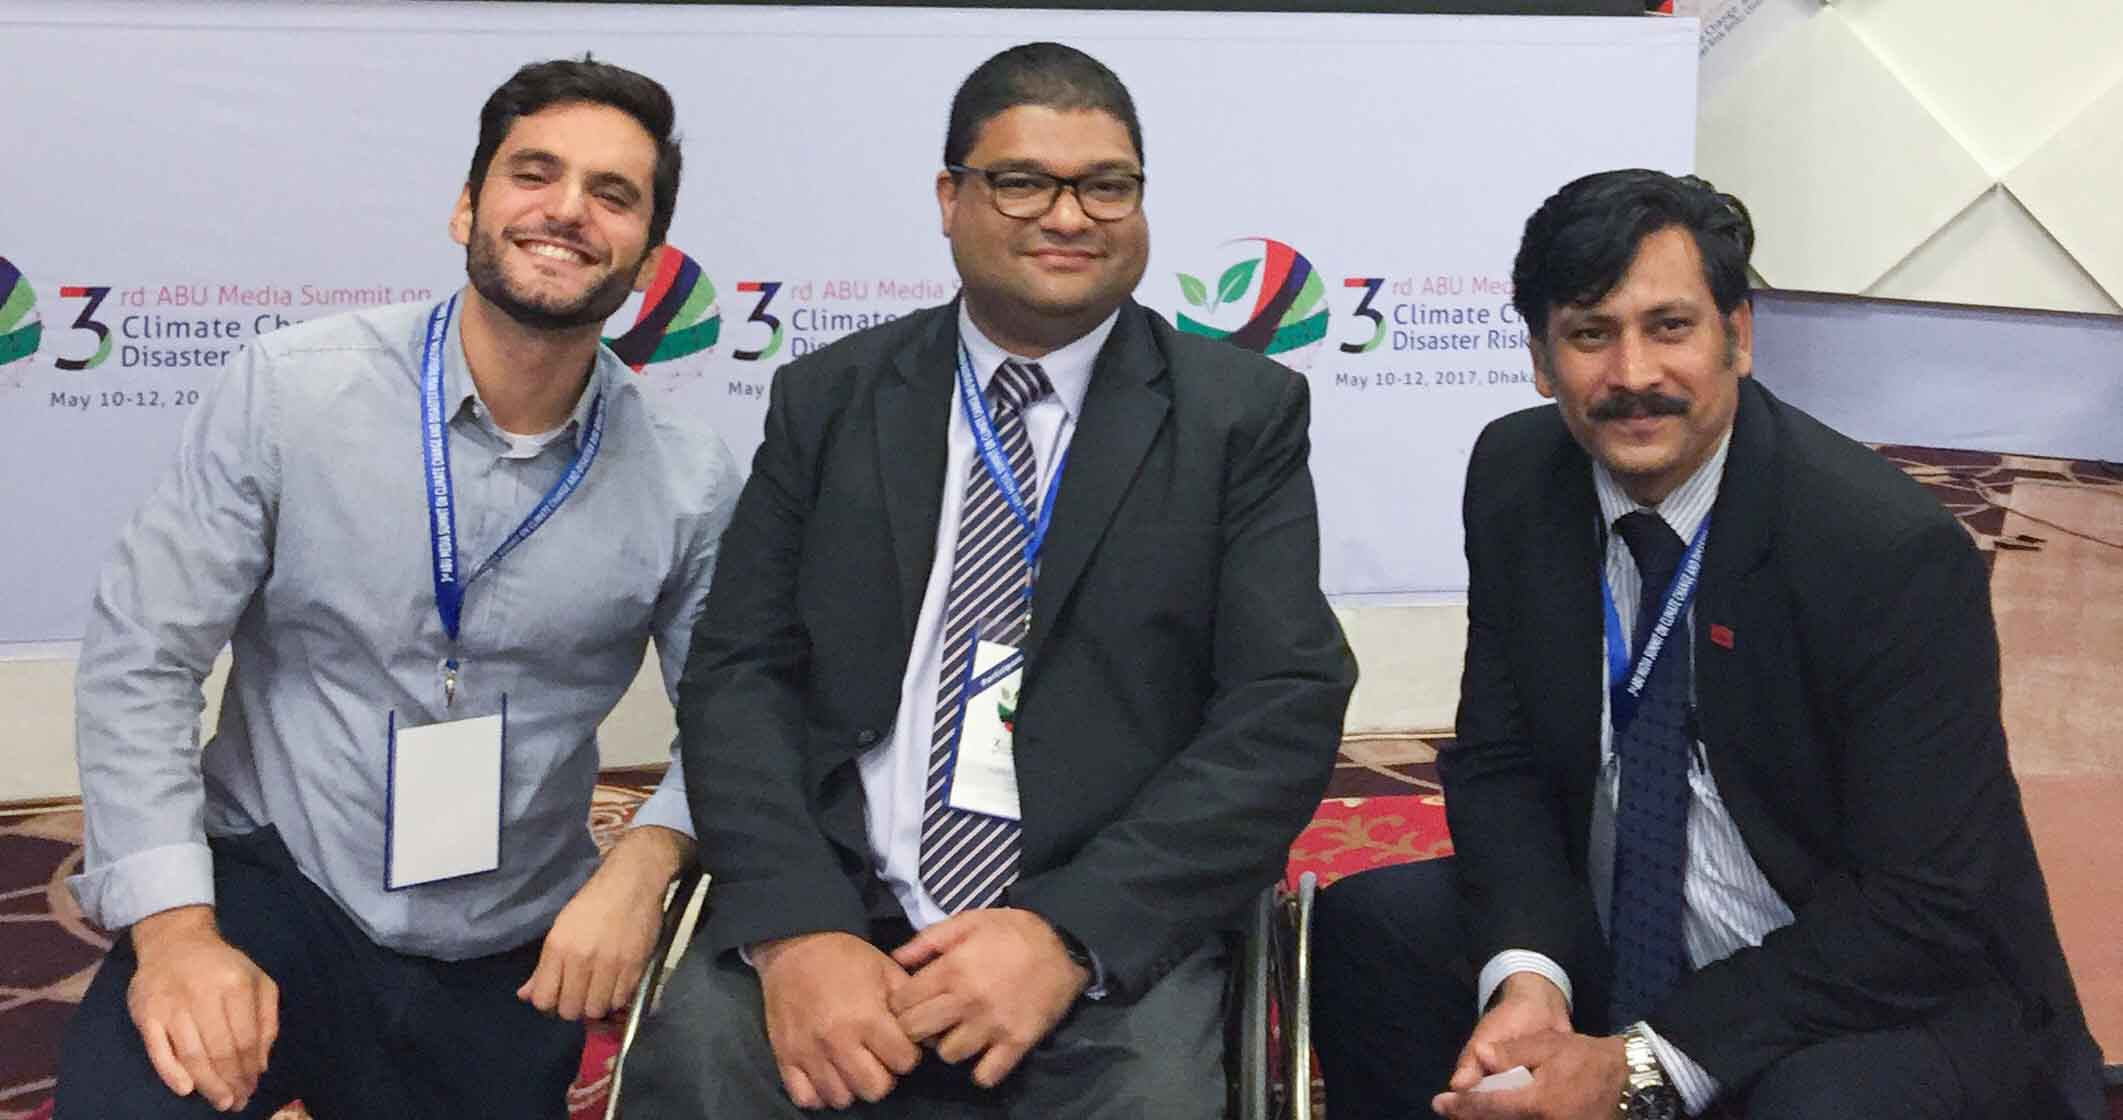 Our CEO, Aqeel Qureshi with Atiq Kainan Ahmed (right) and Donald Tartaglione